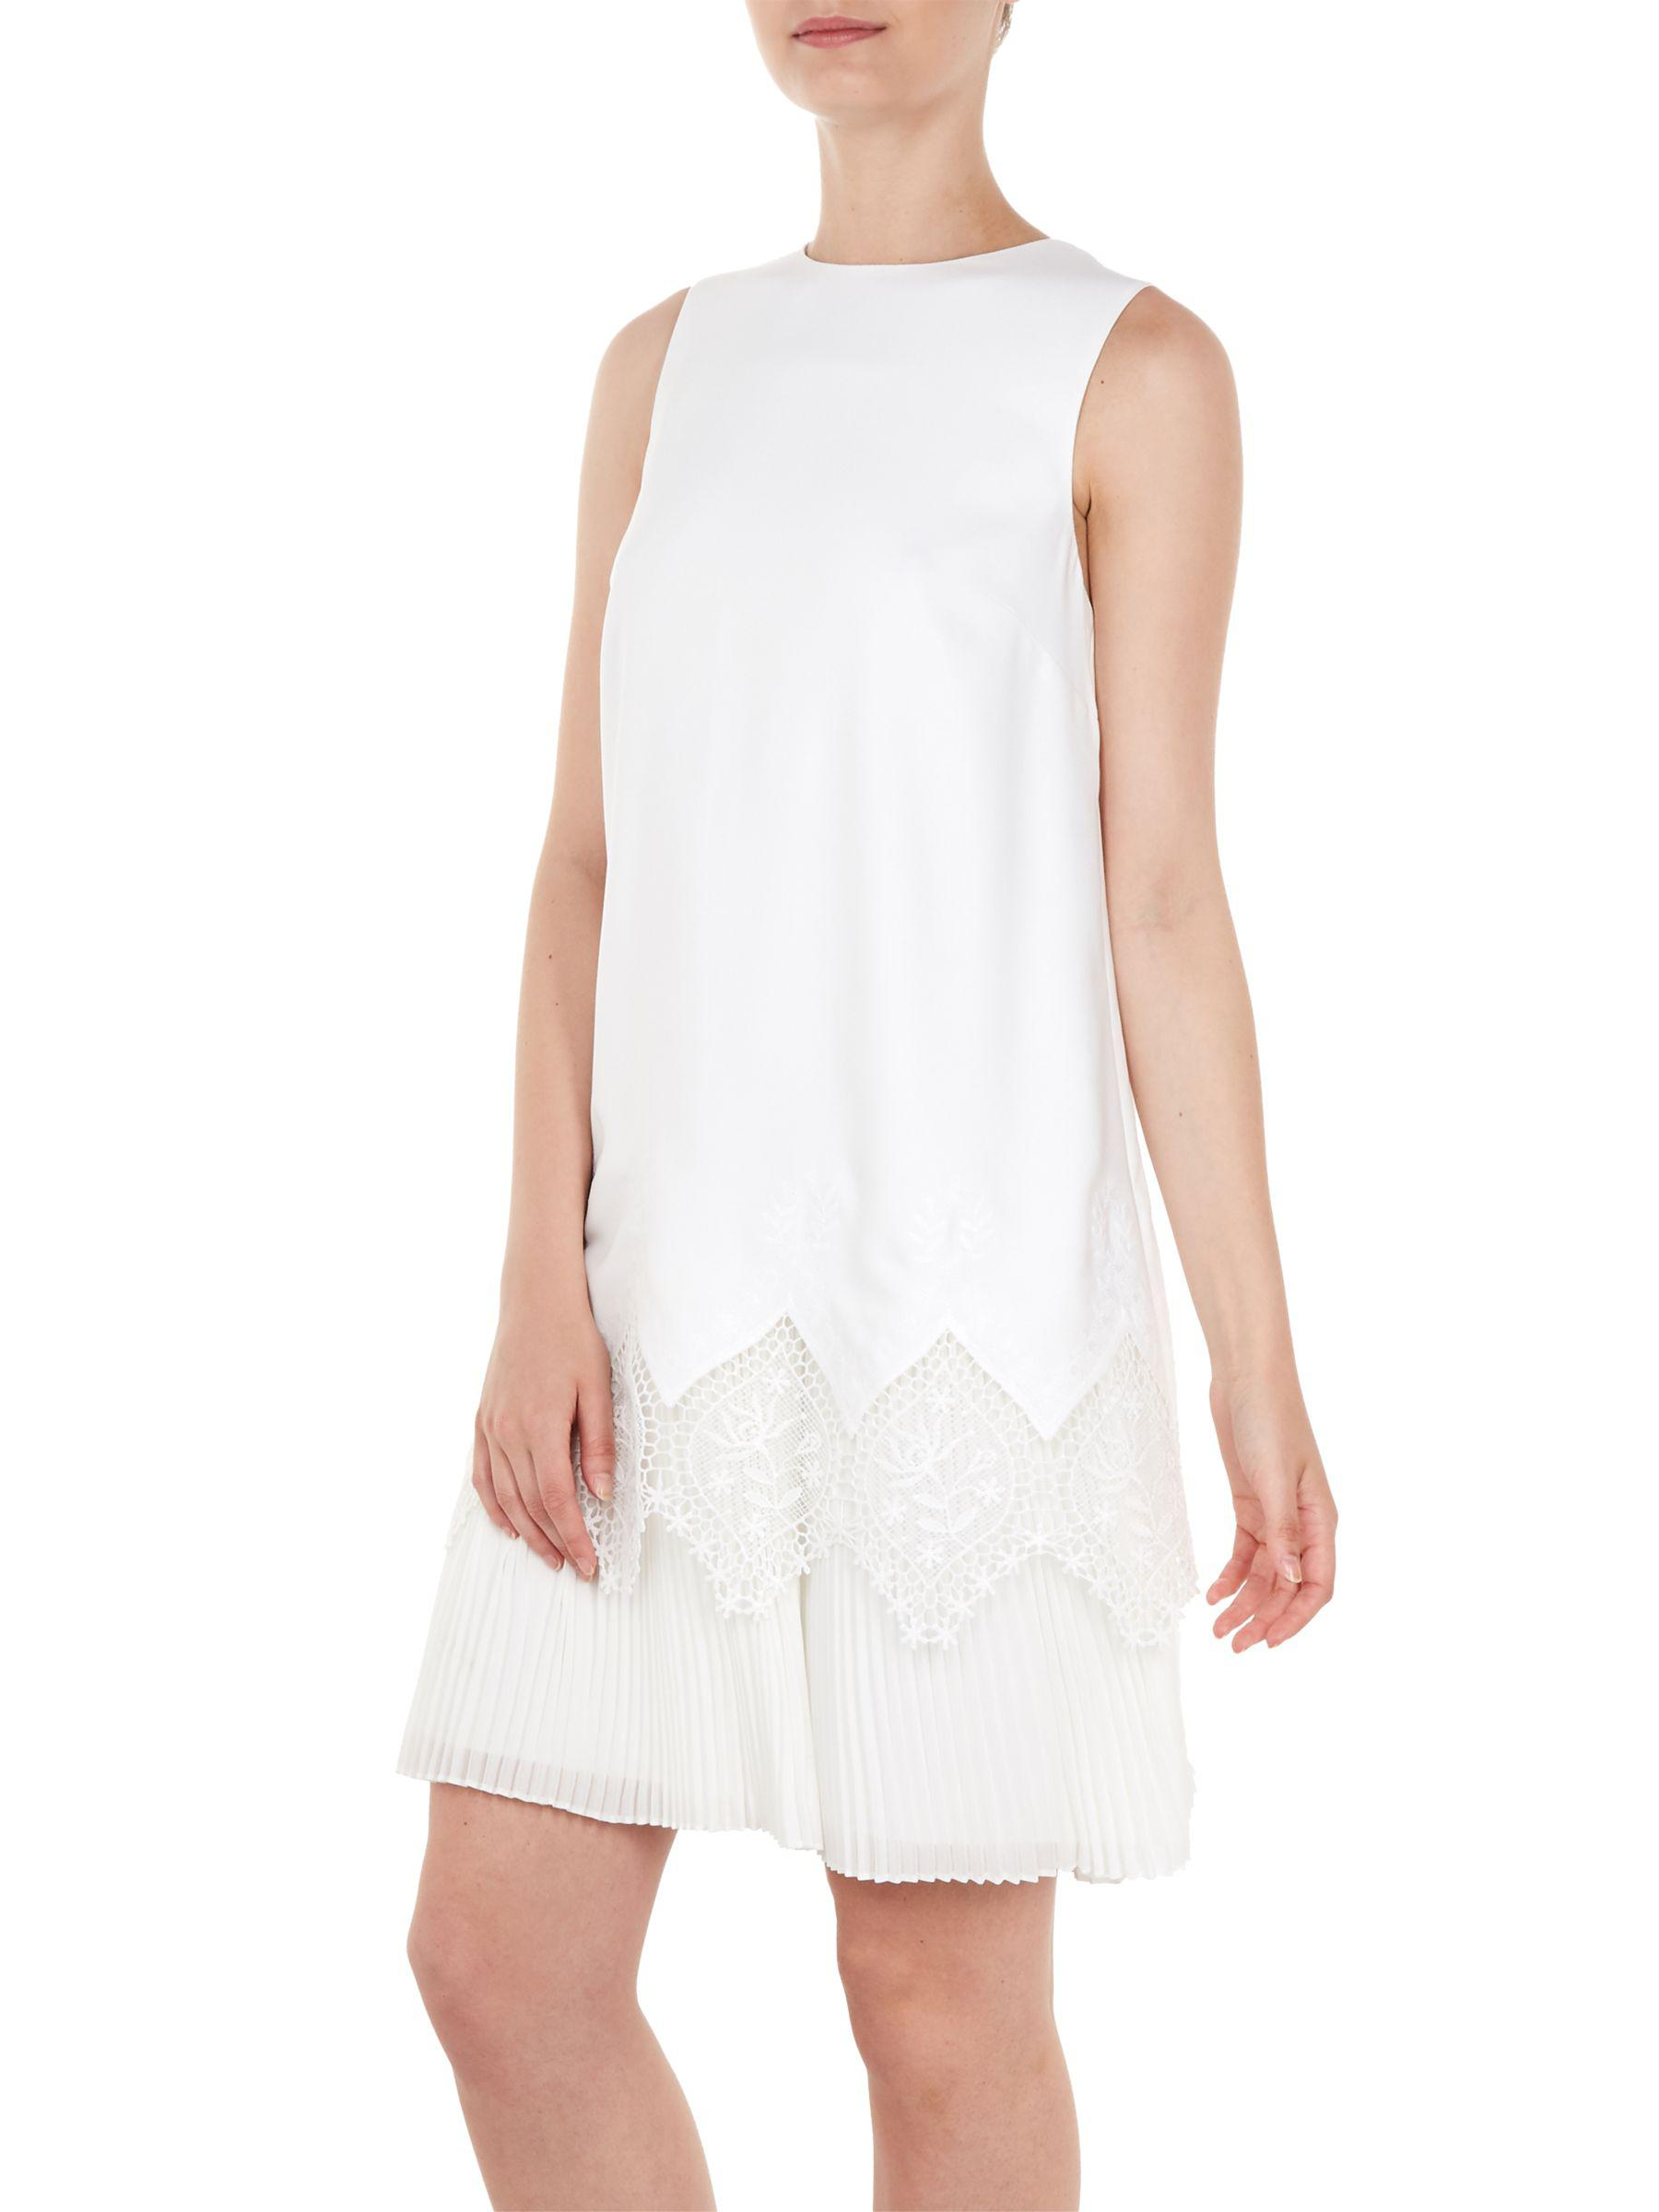 ceb3abc354db9 Ted Baker Nadeen Lace Hem Dress in White - Lyst